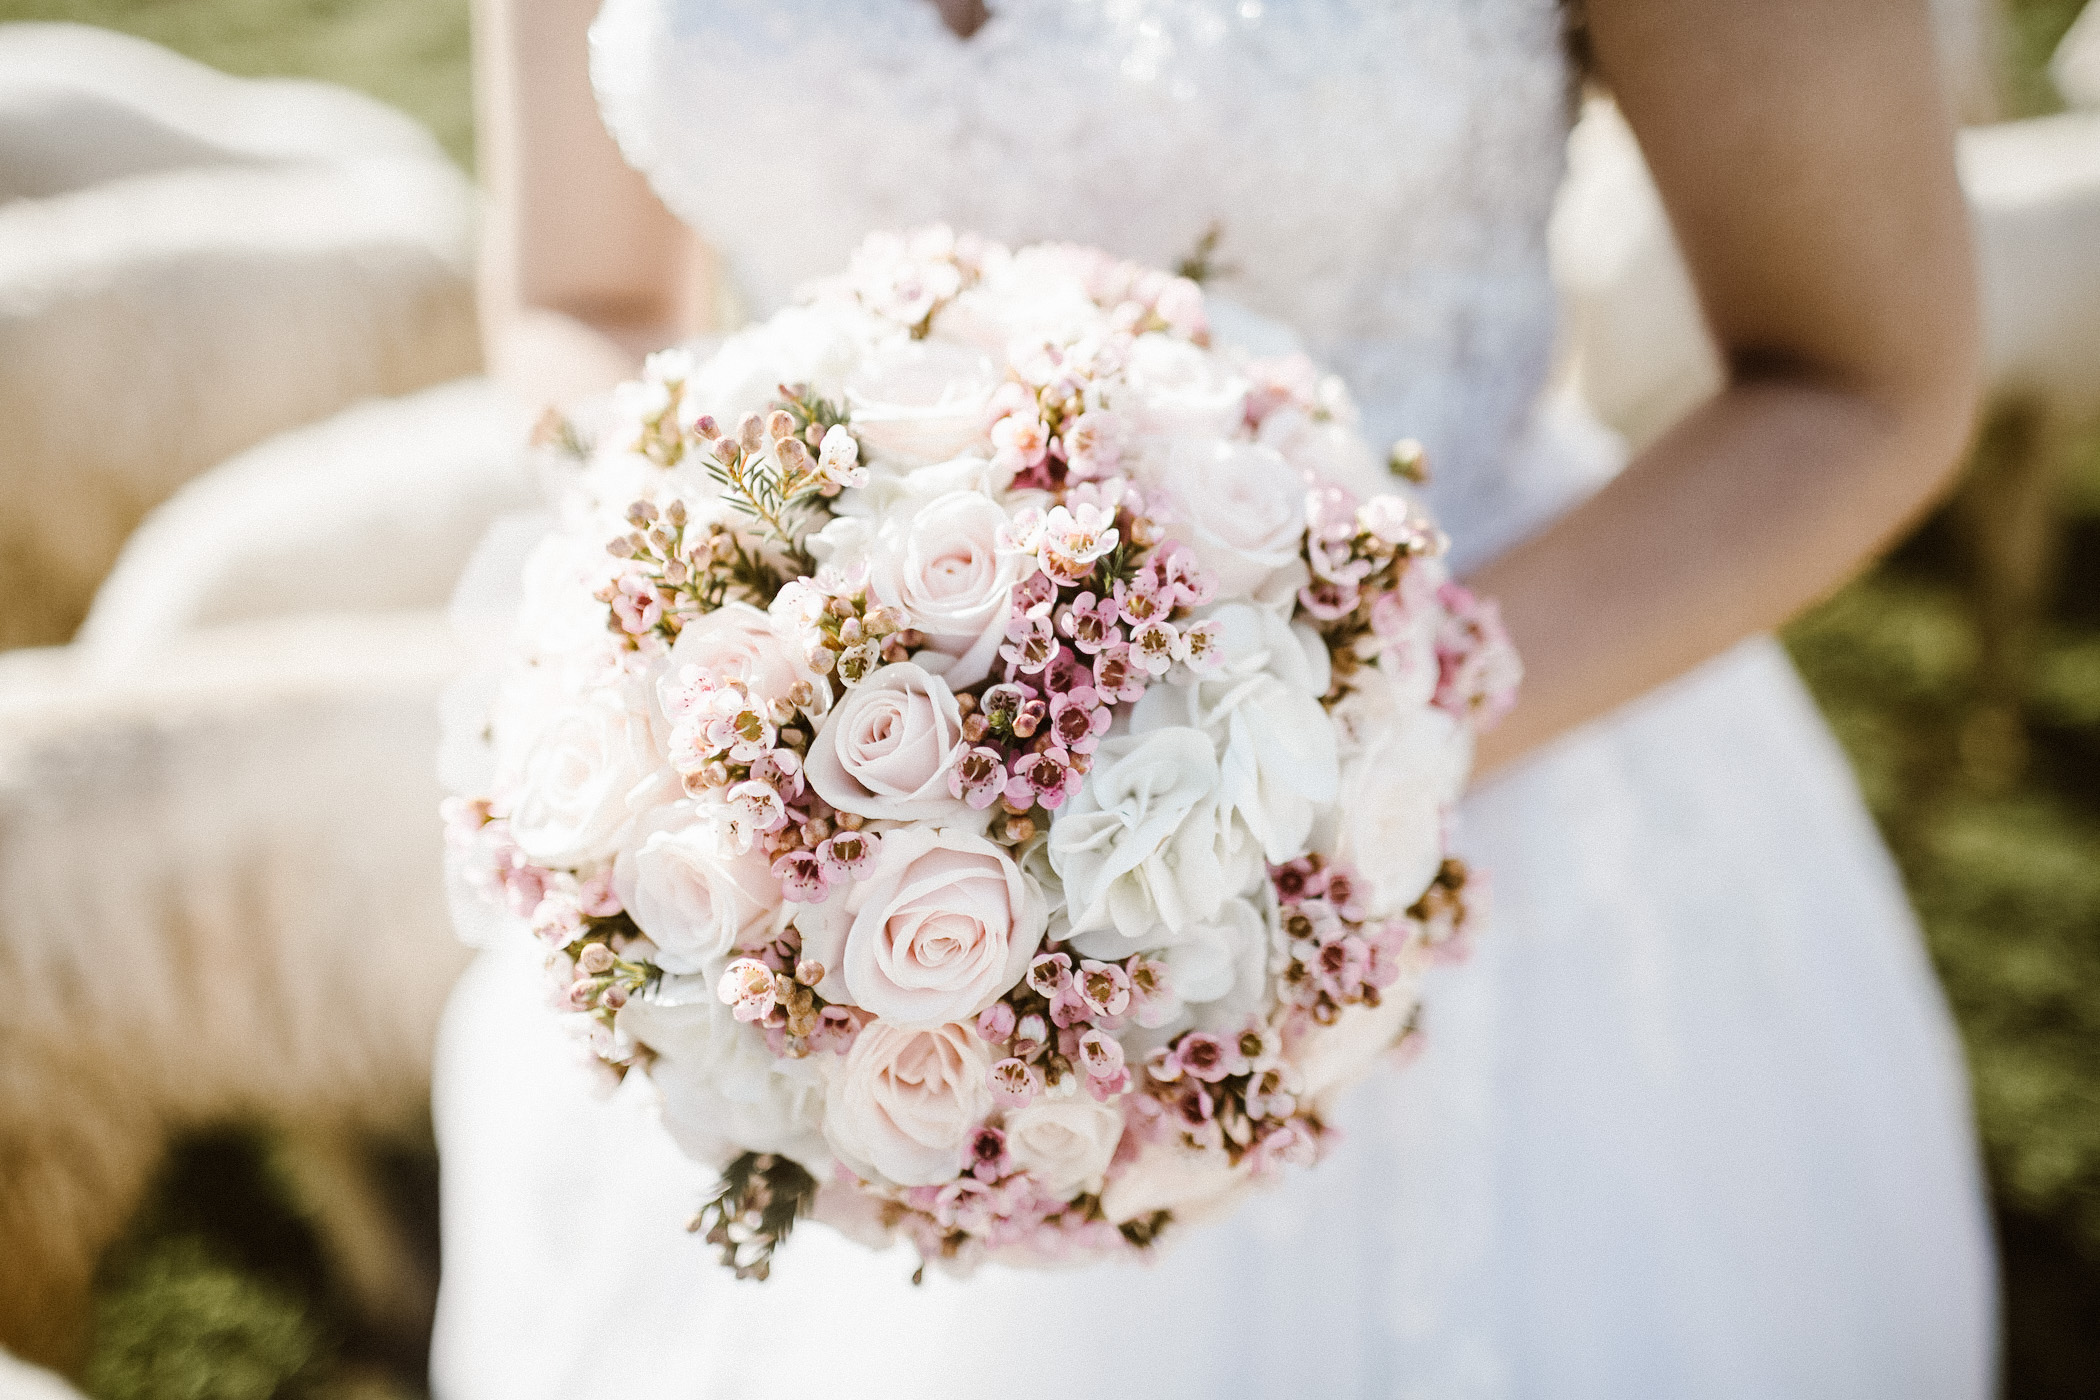 Wedding Beauty Services - Providing you and your bridal party fashion forward to timeless hairstyling and natural beauty makeup services. Serving Los Angeles and Orange County.Learn more ➝